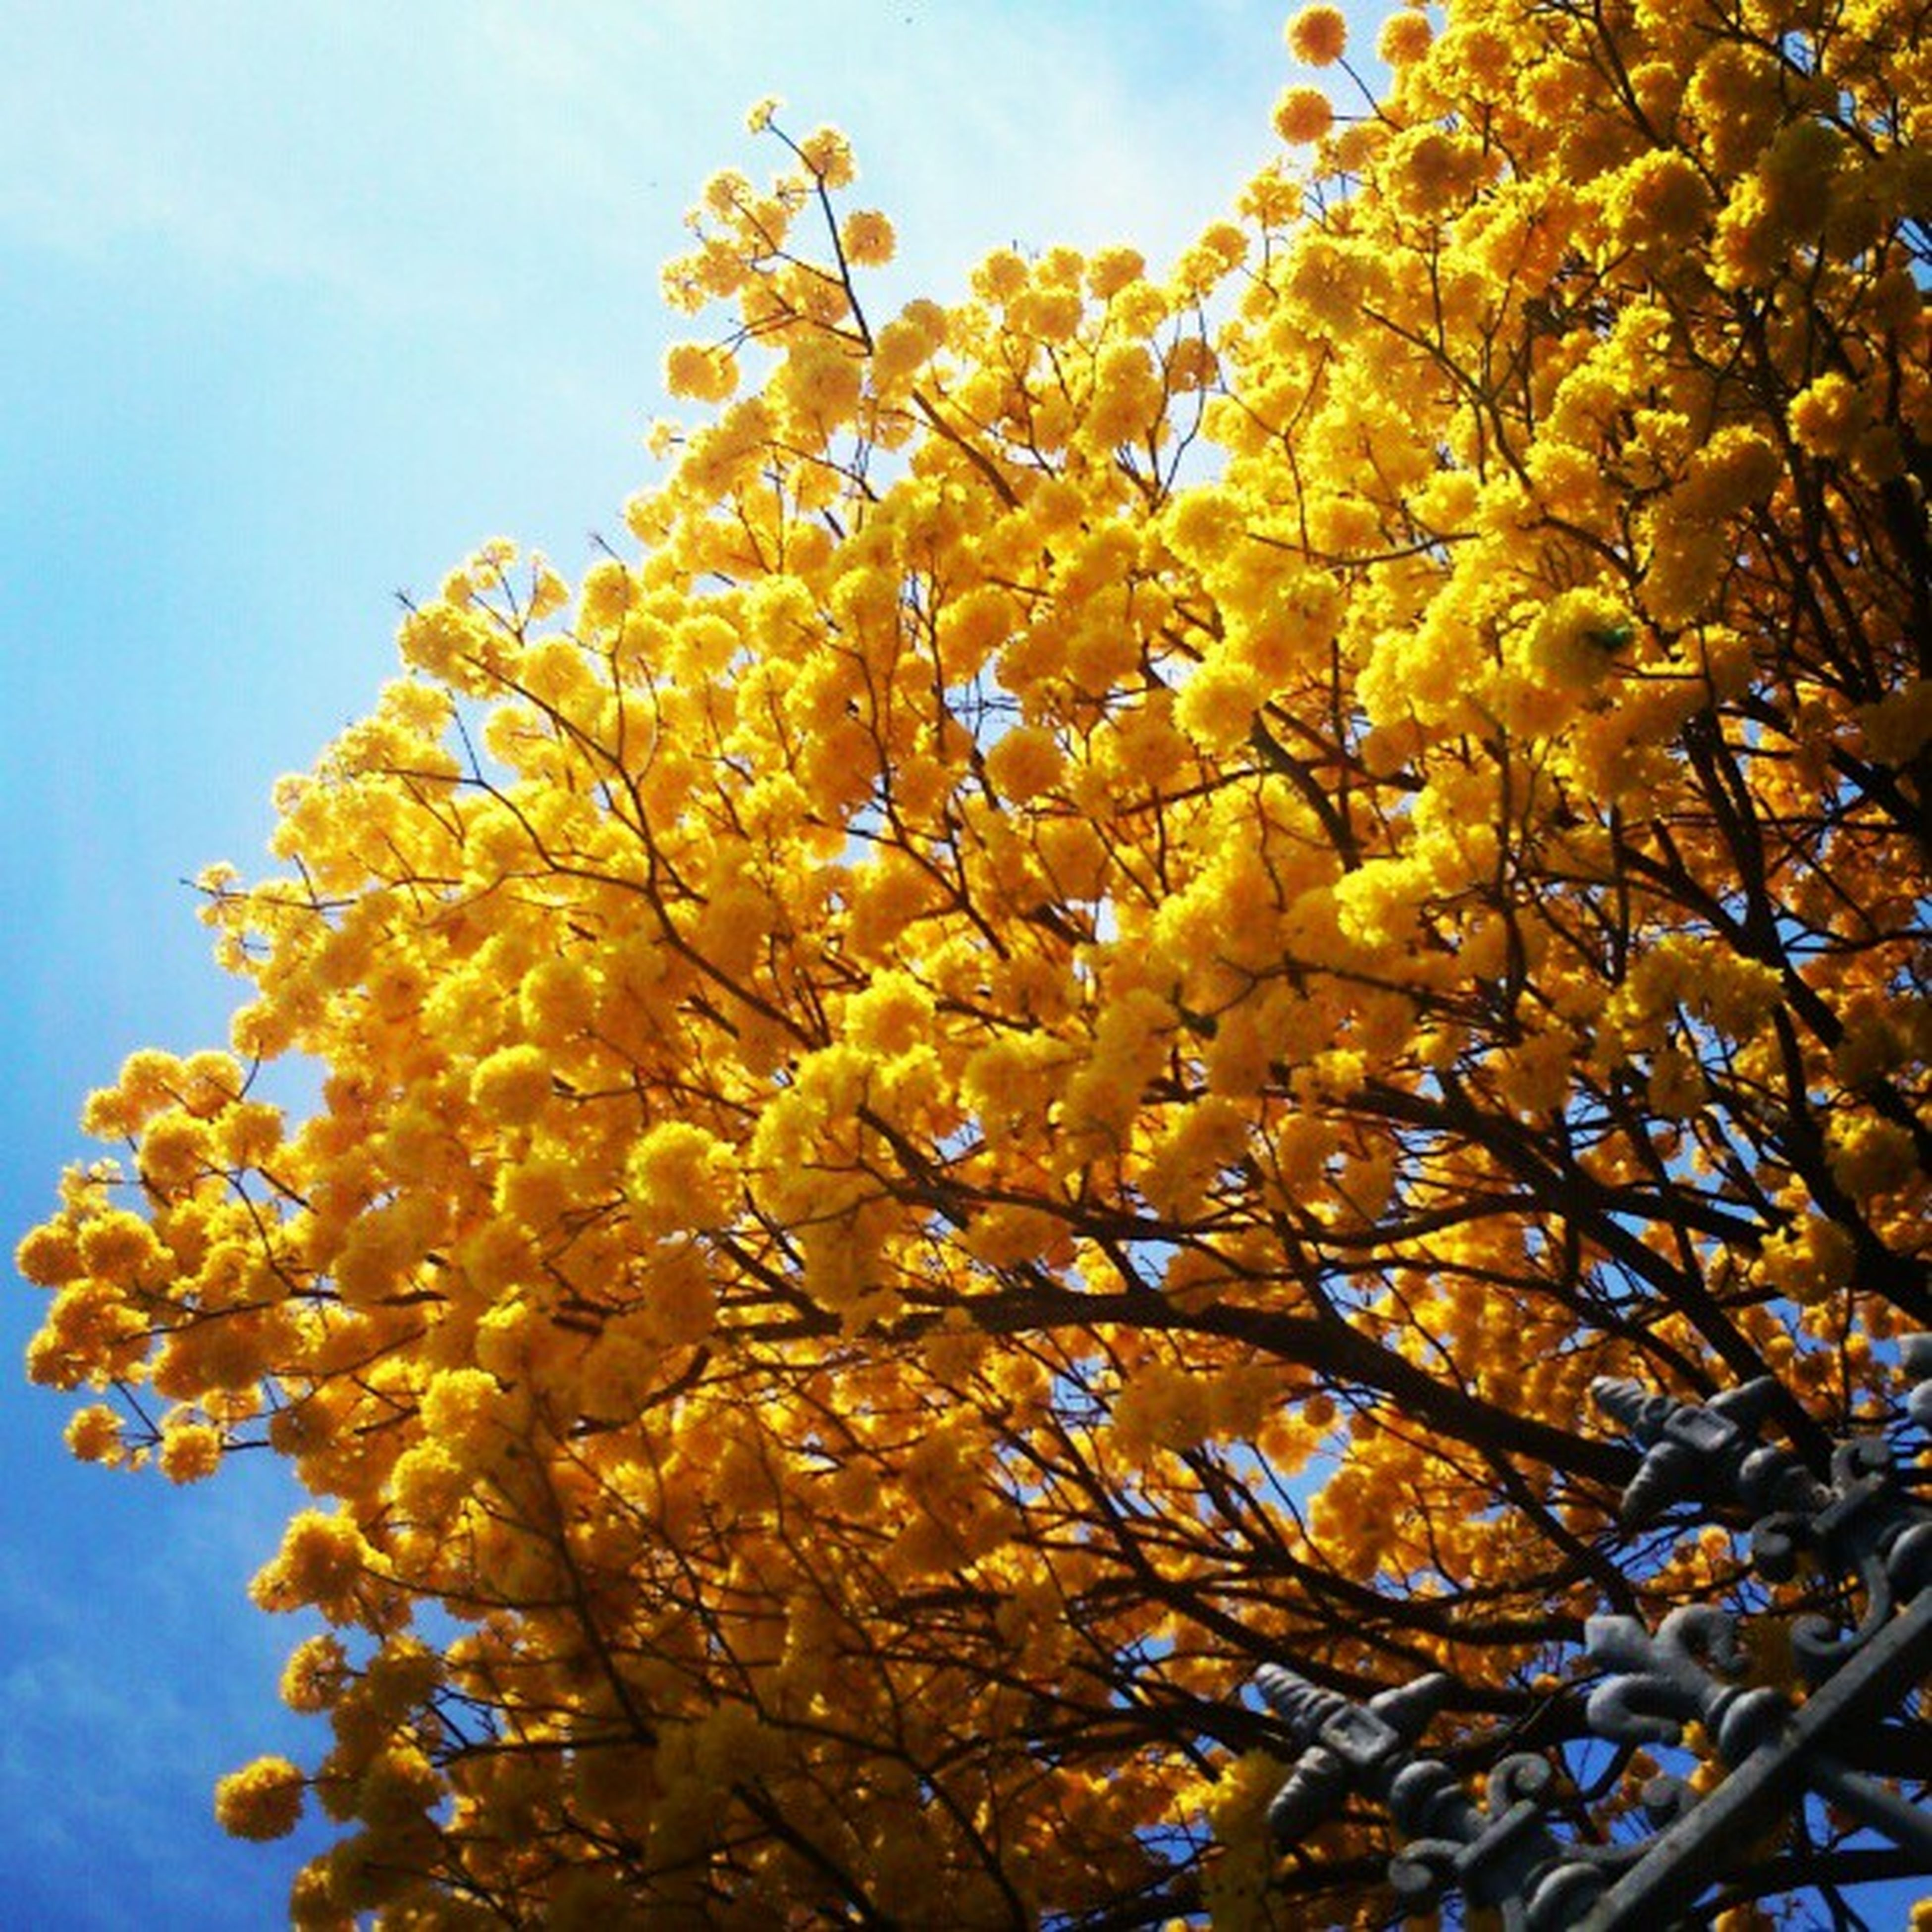 low angle view, yellow, tree, branch, autumn, growth, nature, sky, change, season, leaf, beauty in nature, close-up, tranquility, day, no people, outdoors, clear sky, sunlight, freshness